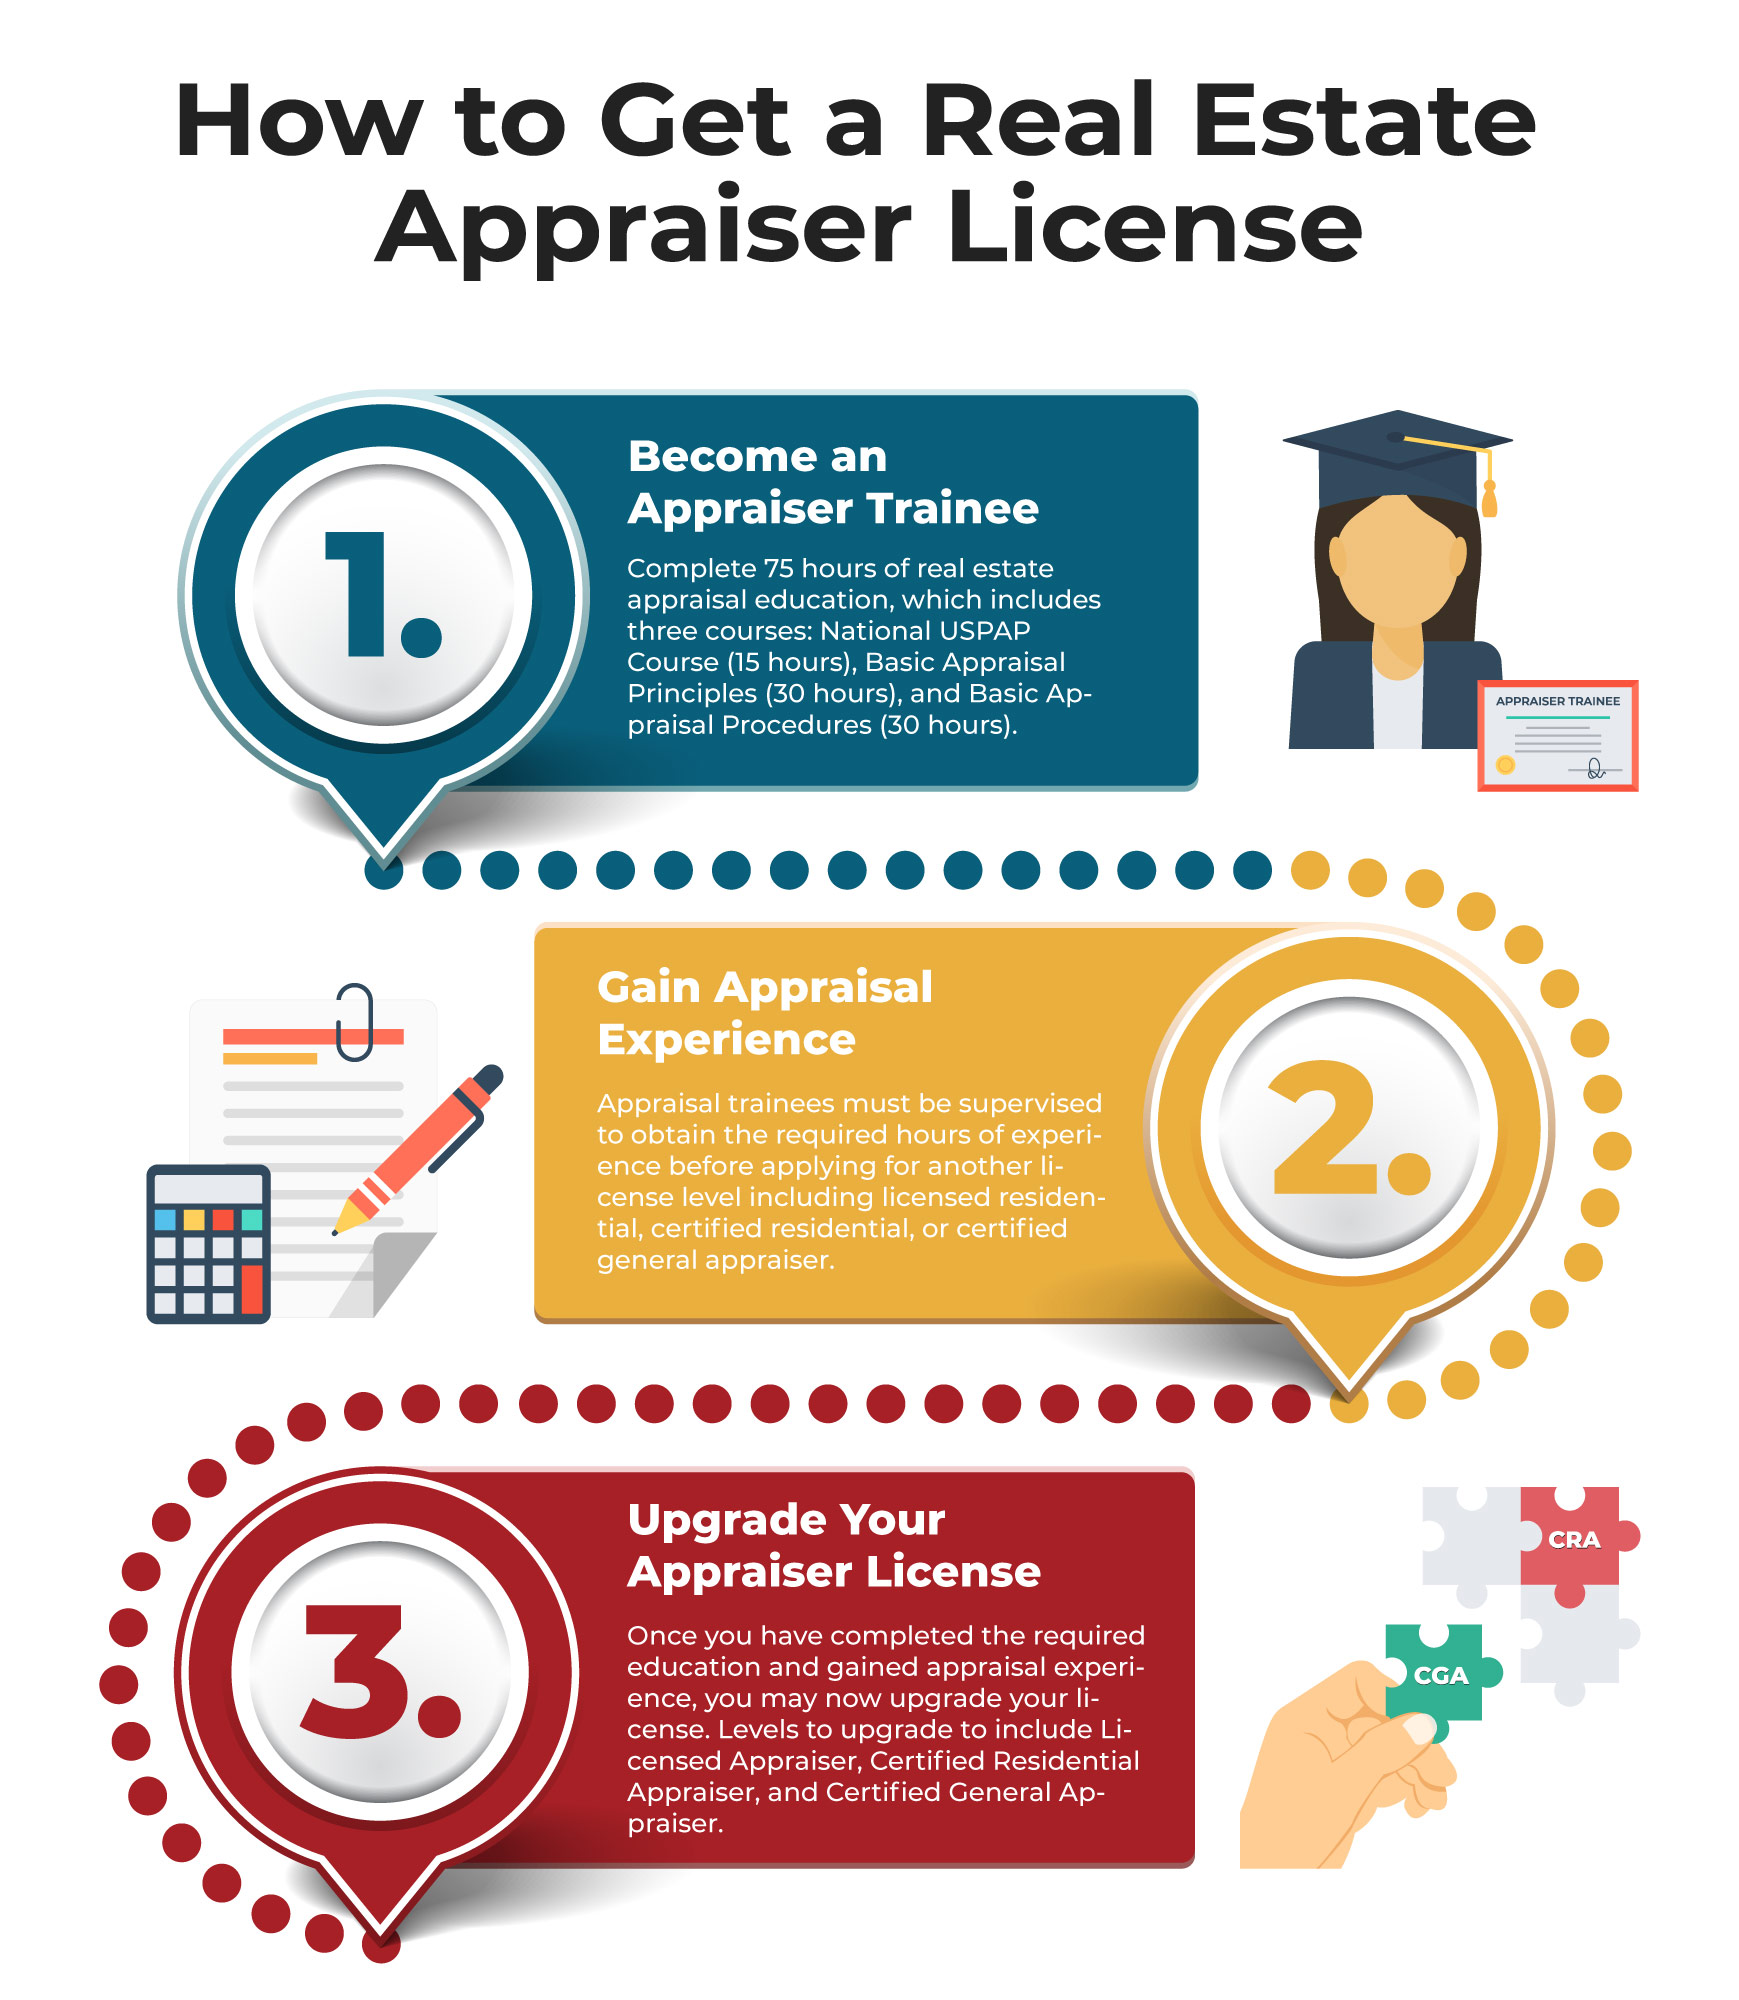 Learn How to Get a Real Estate Apraiser License